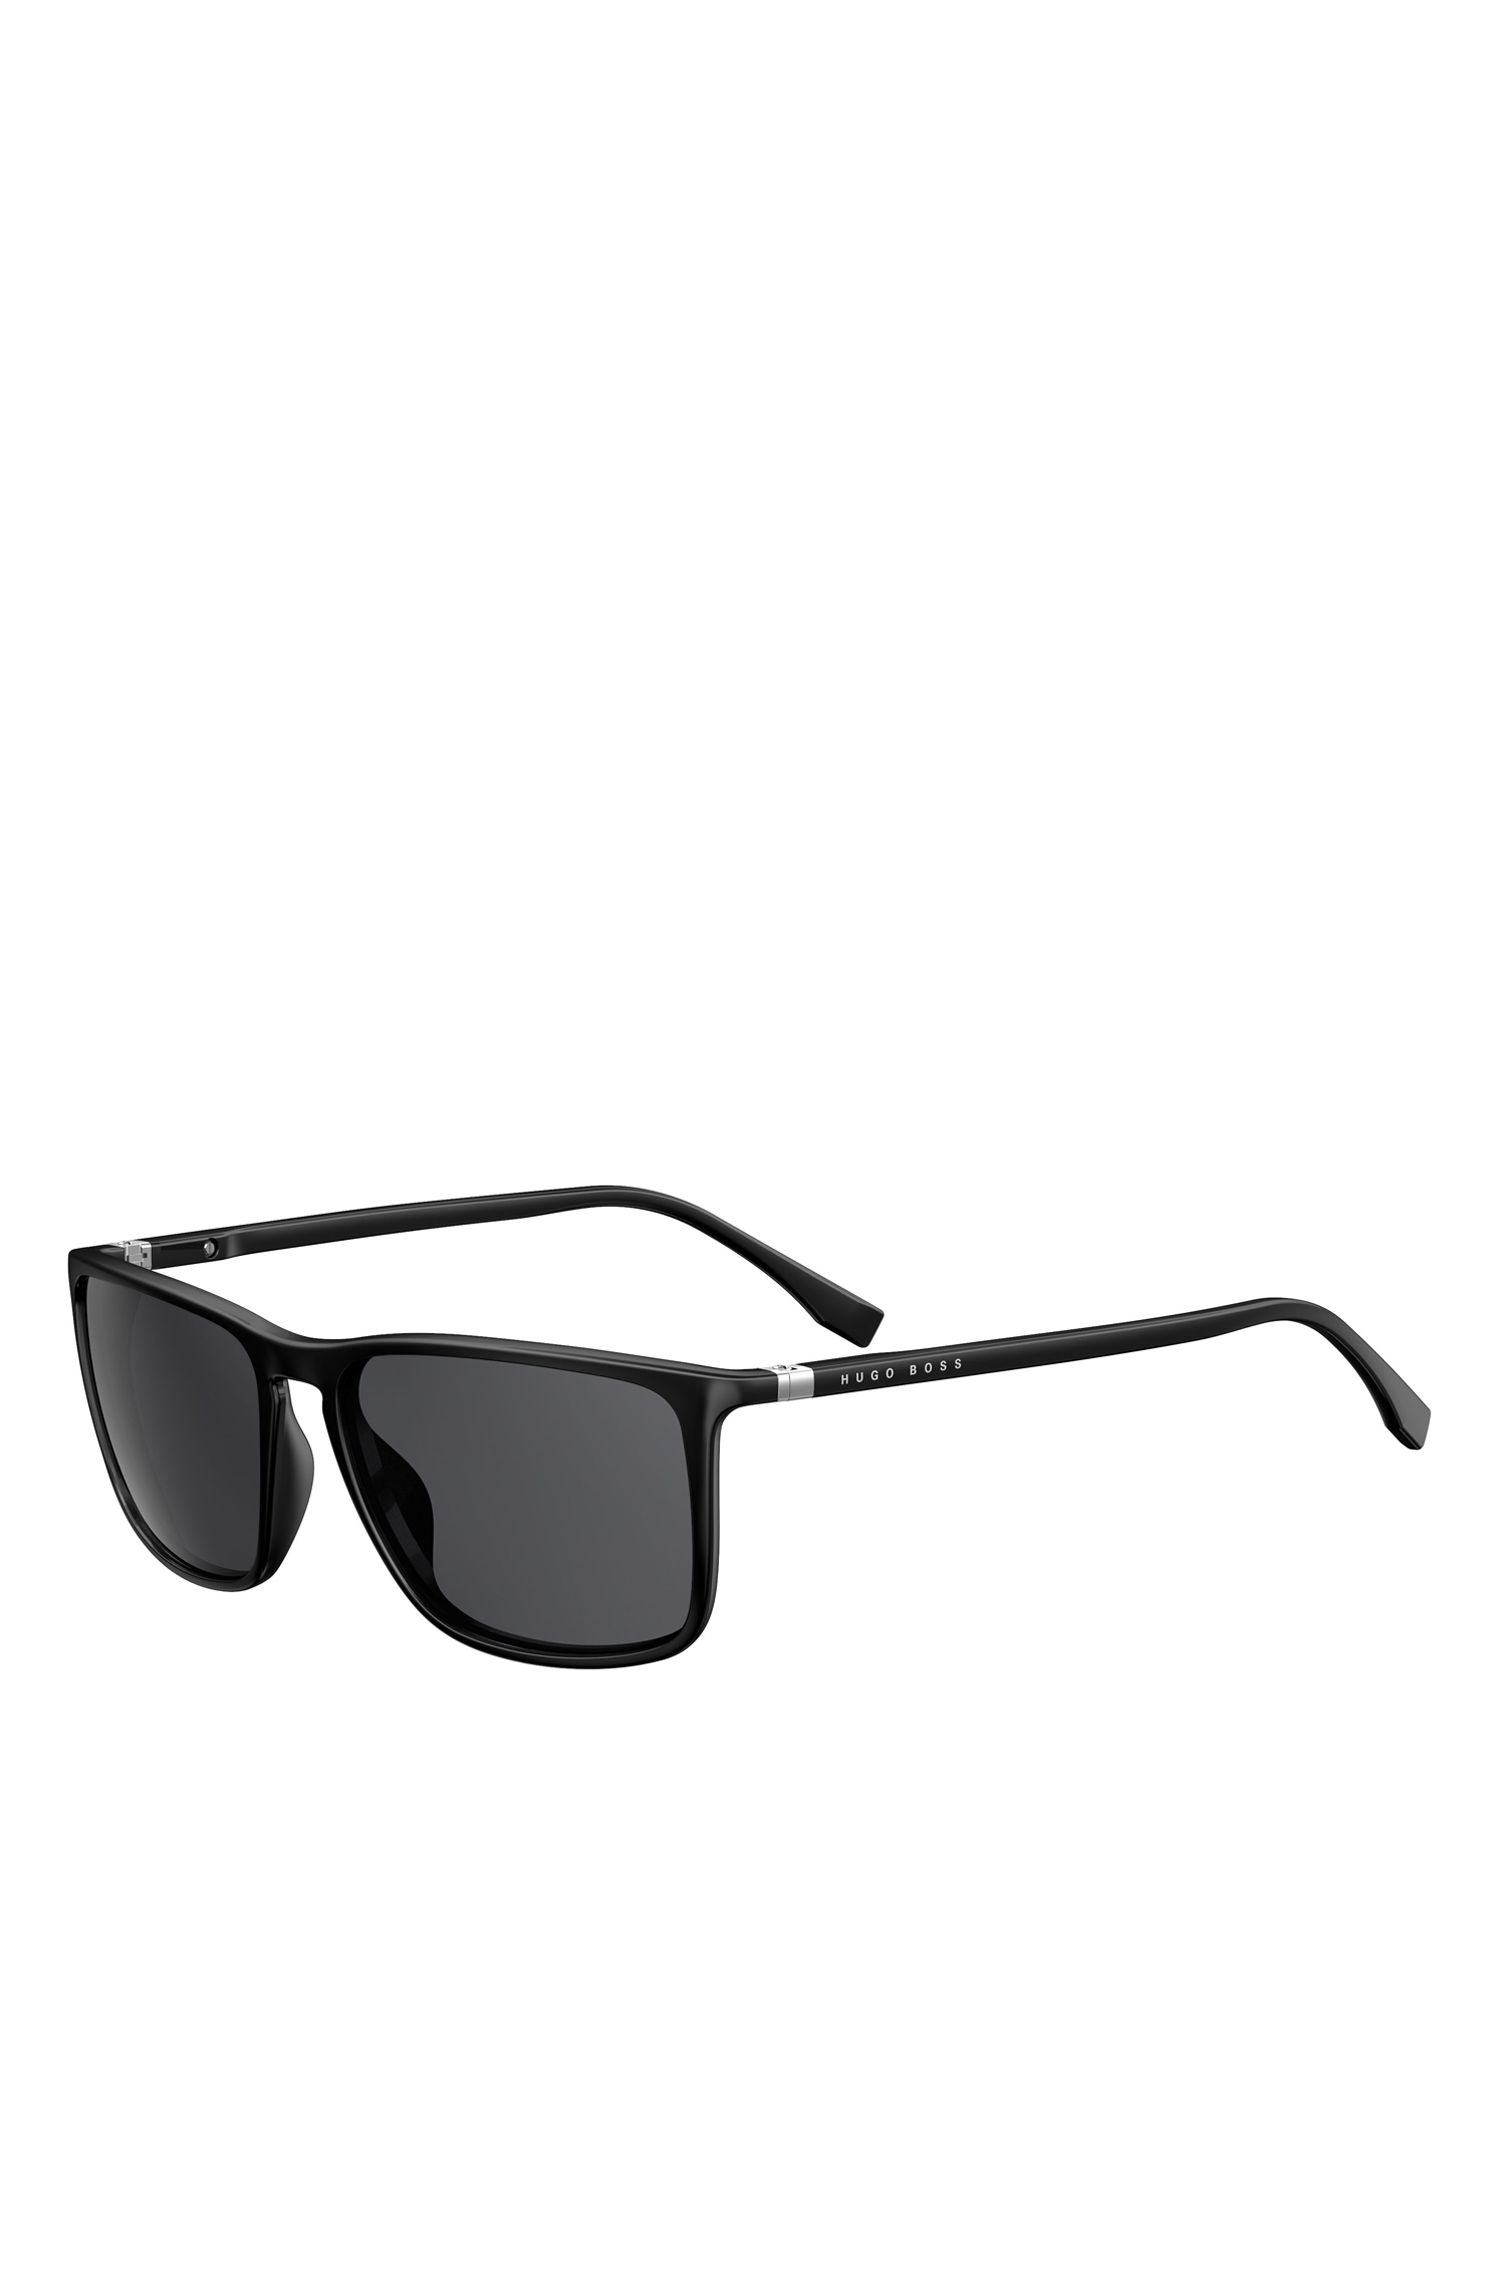 'BOSS 0665S' | Black Lens Polarized Square Sunglasses